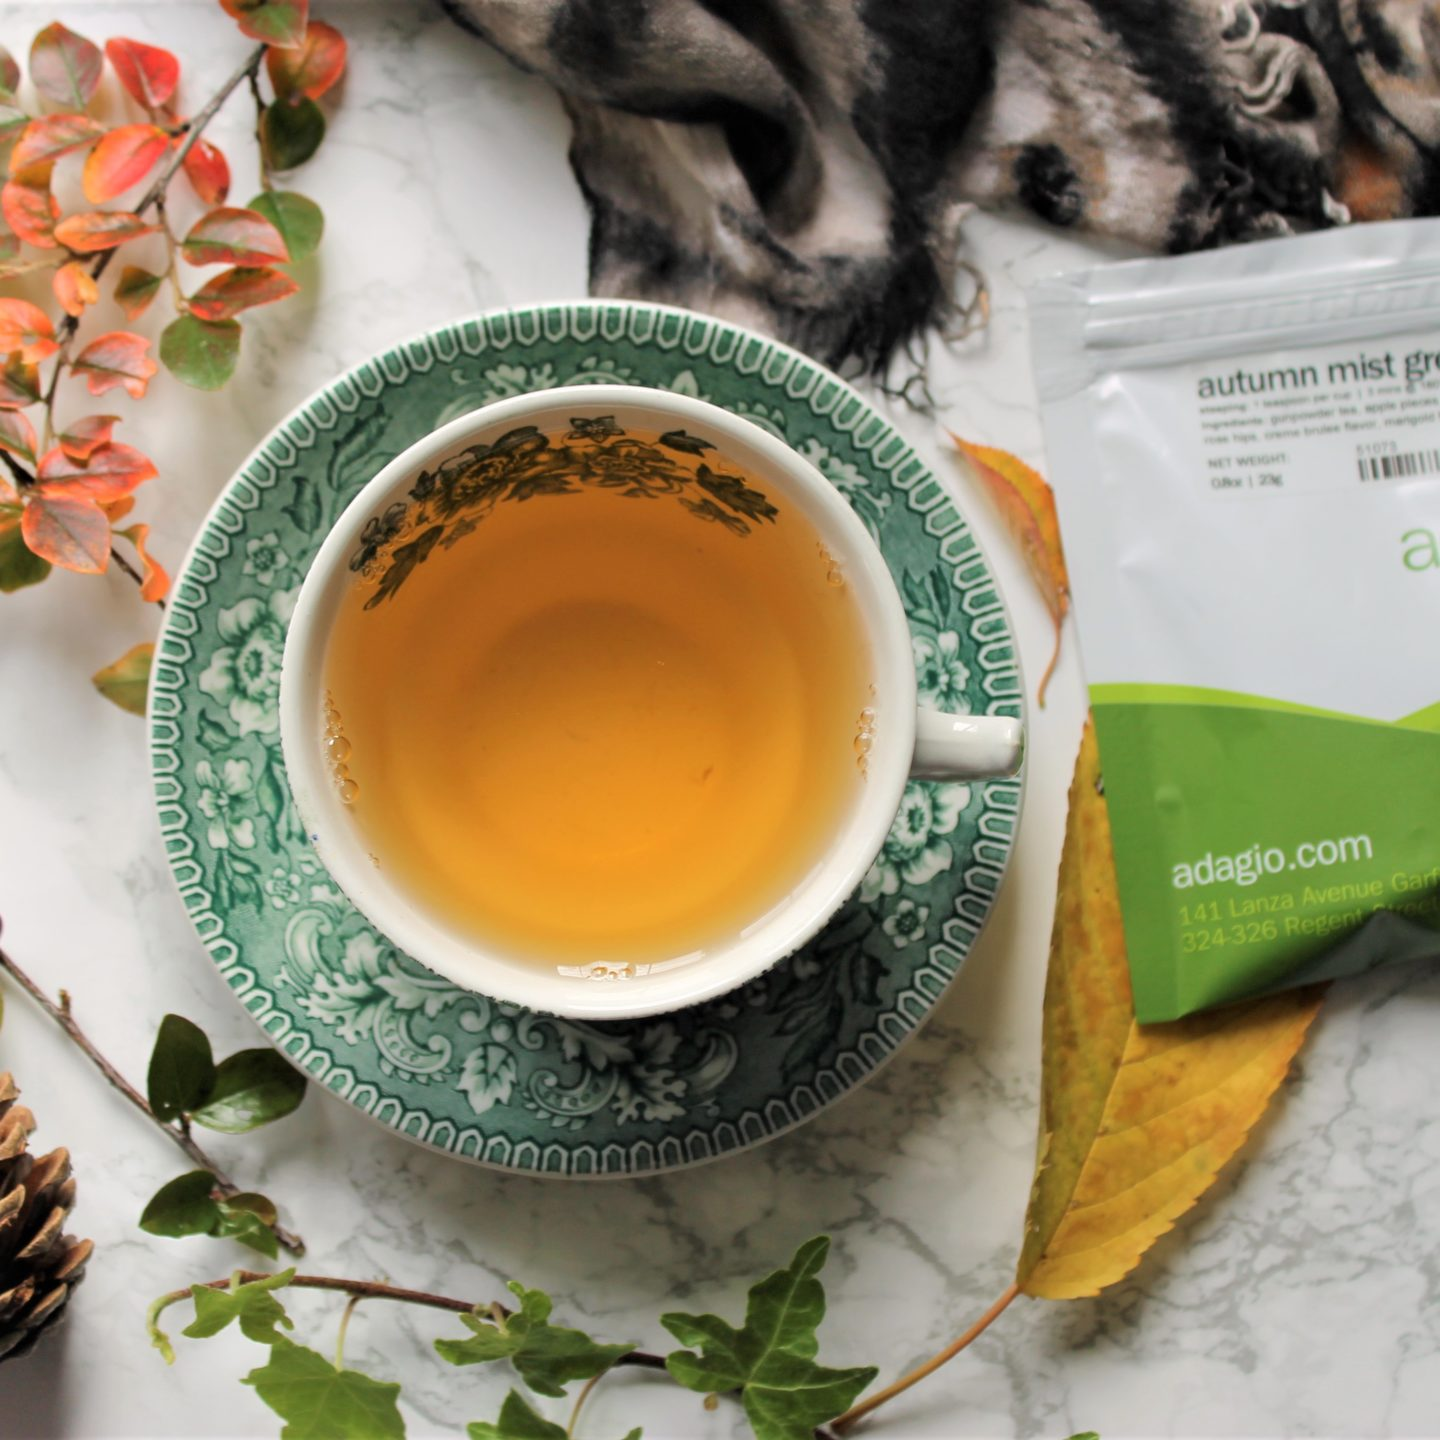 Adagio Autumn Mist Green Tea Review